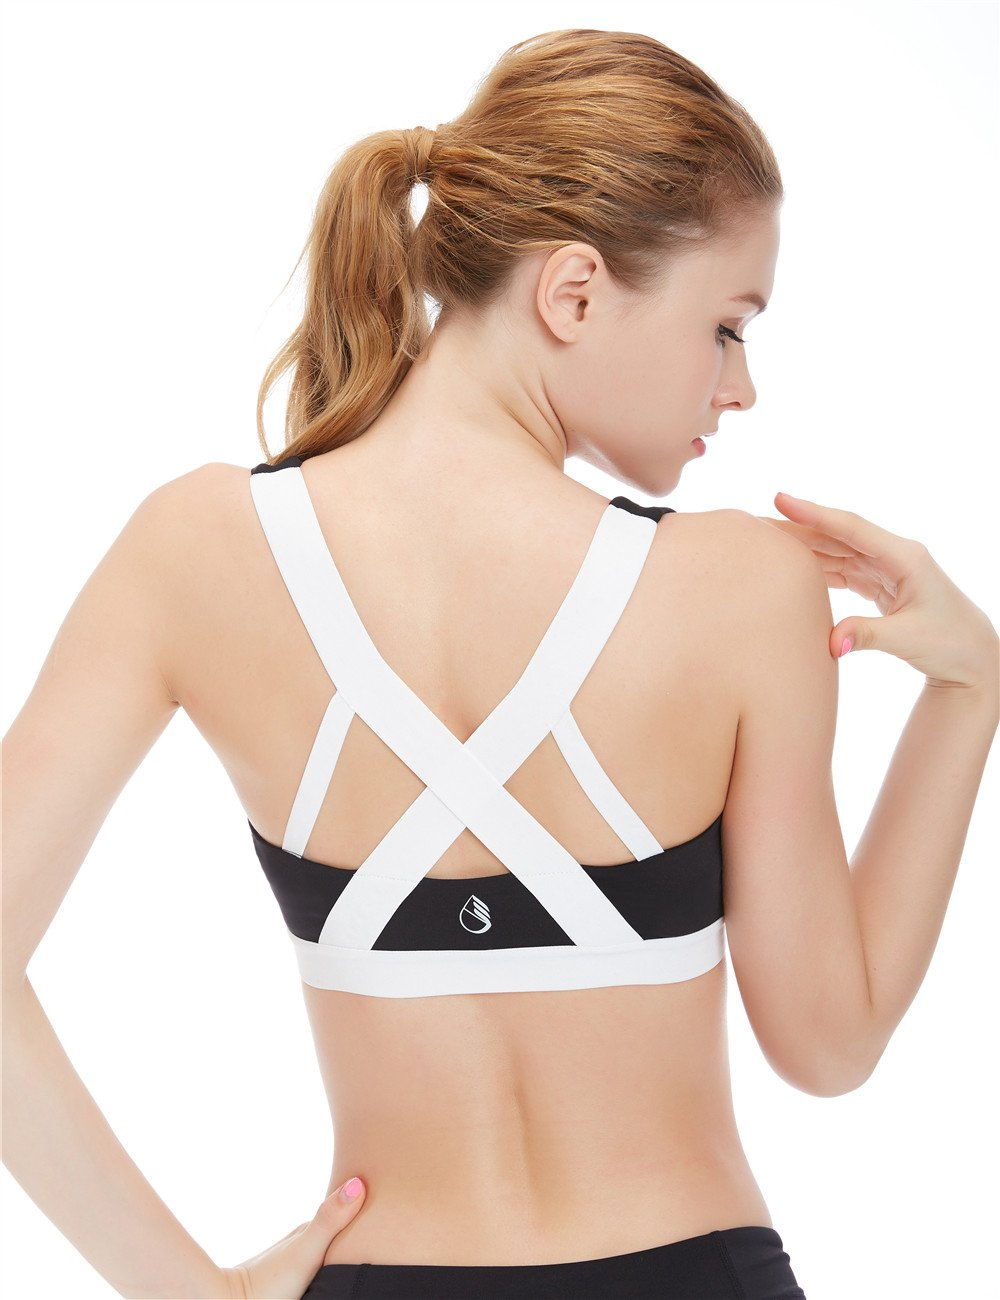 icyzone Women's Activewear Fitness Moving Comfortbal Racerback Sports Bras (XL, White Cross Back)